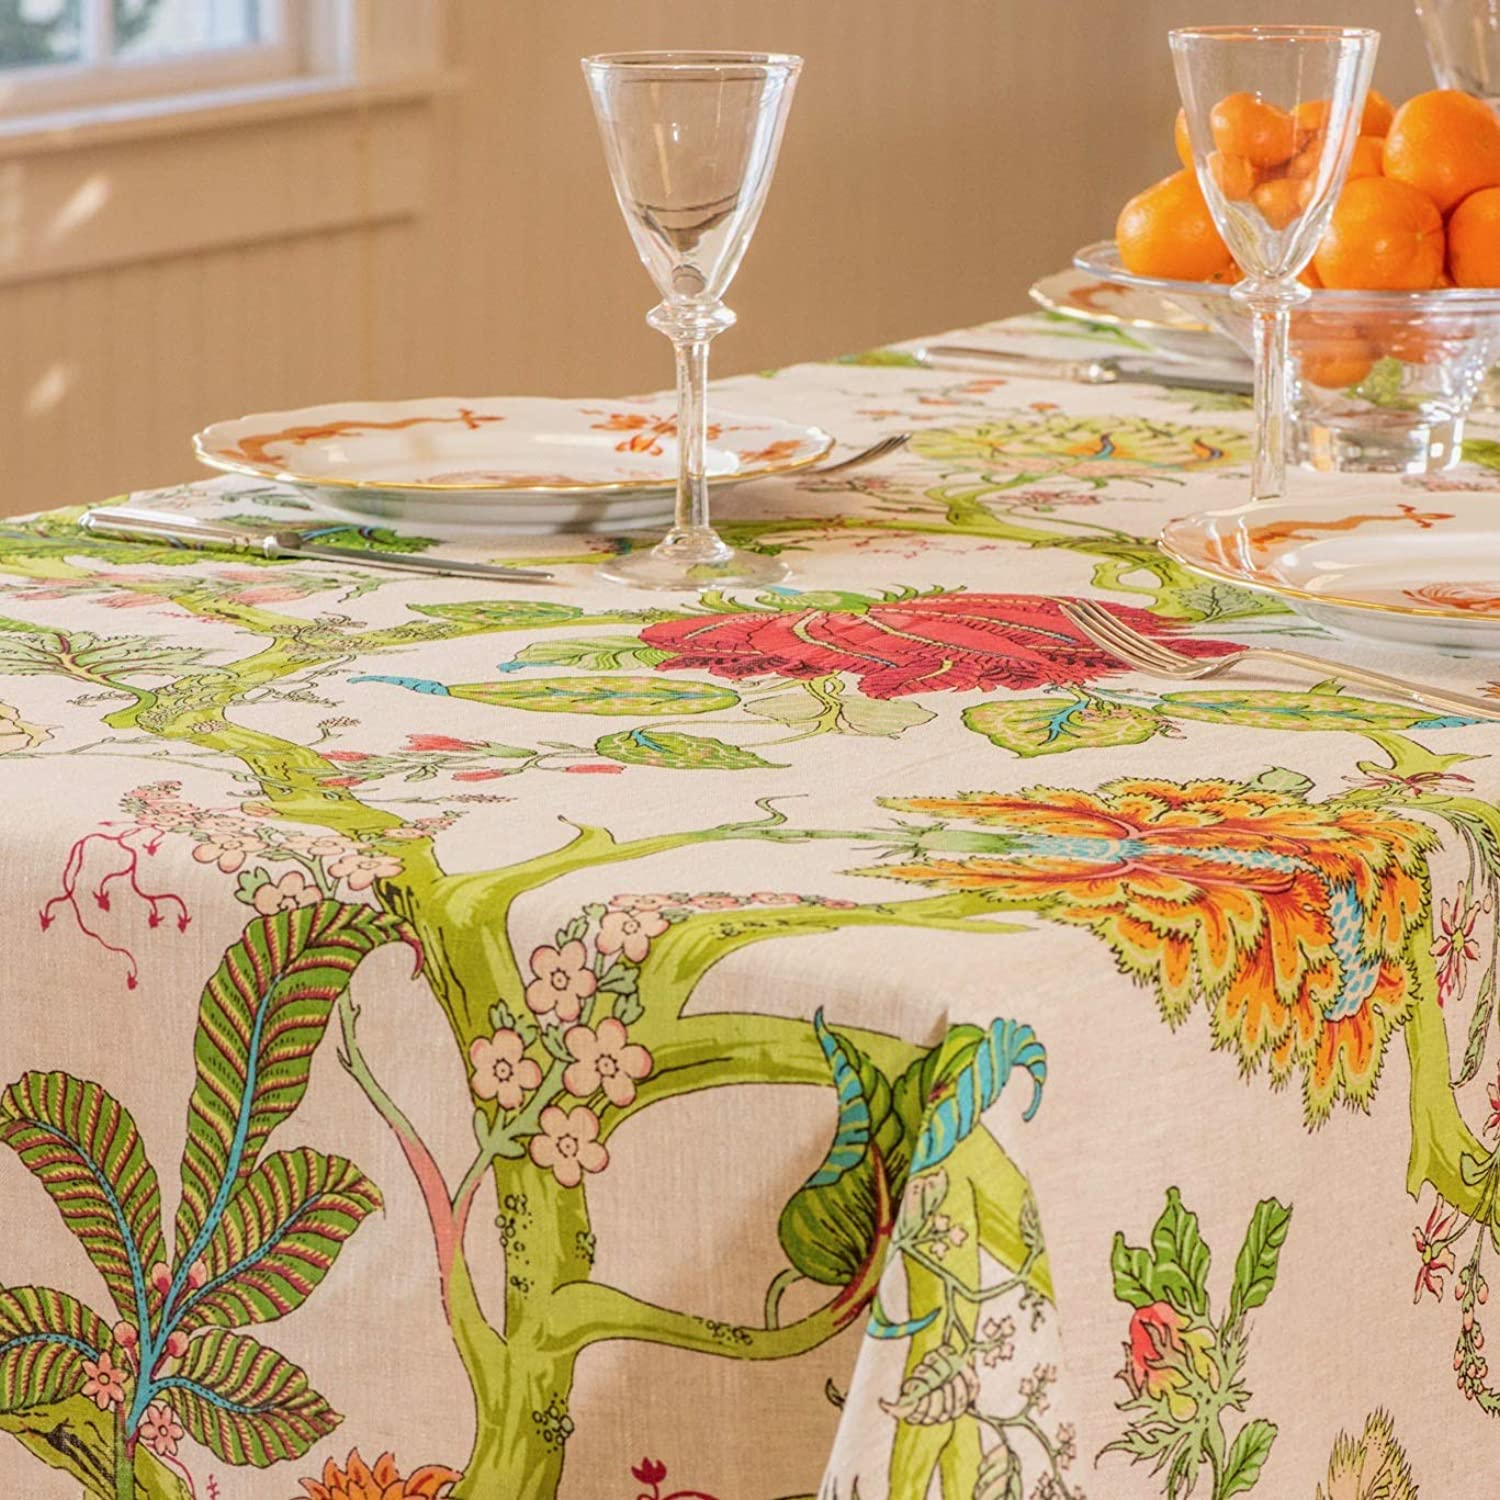 "Amelie Michel French Linen Tablecloth in Darjeeling   Authentic 100% Linen Fabric, Made in France [60"" x 96"" Rectangle]"